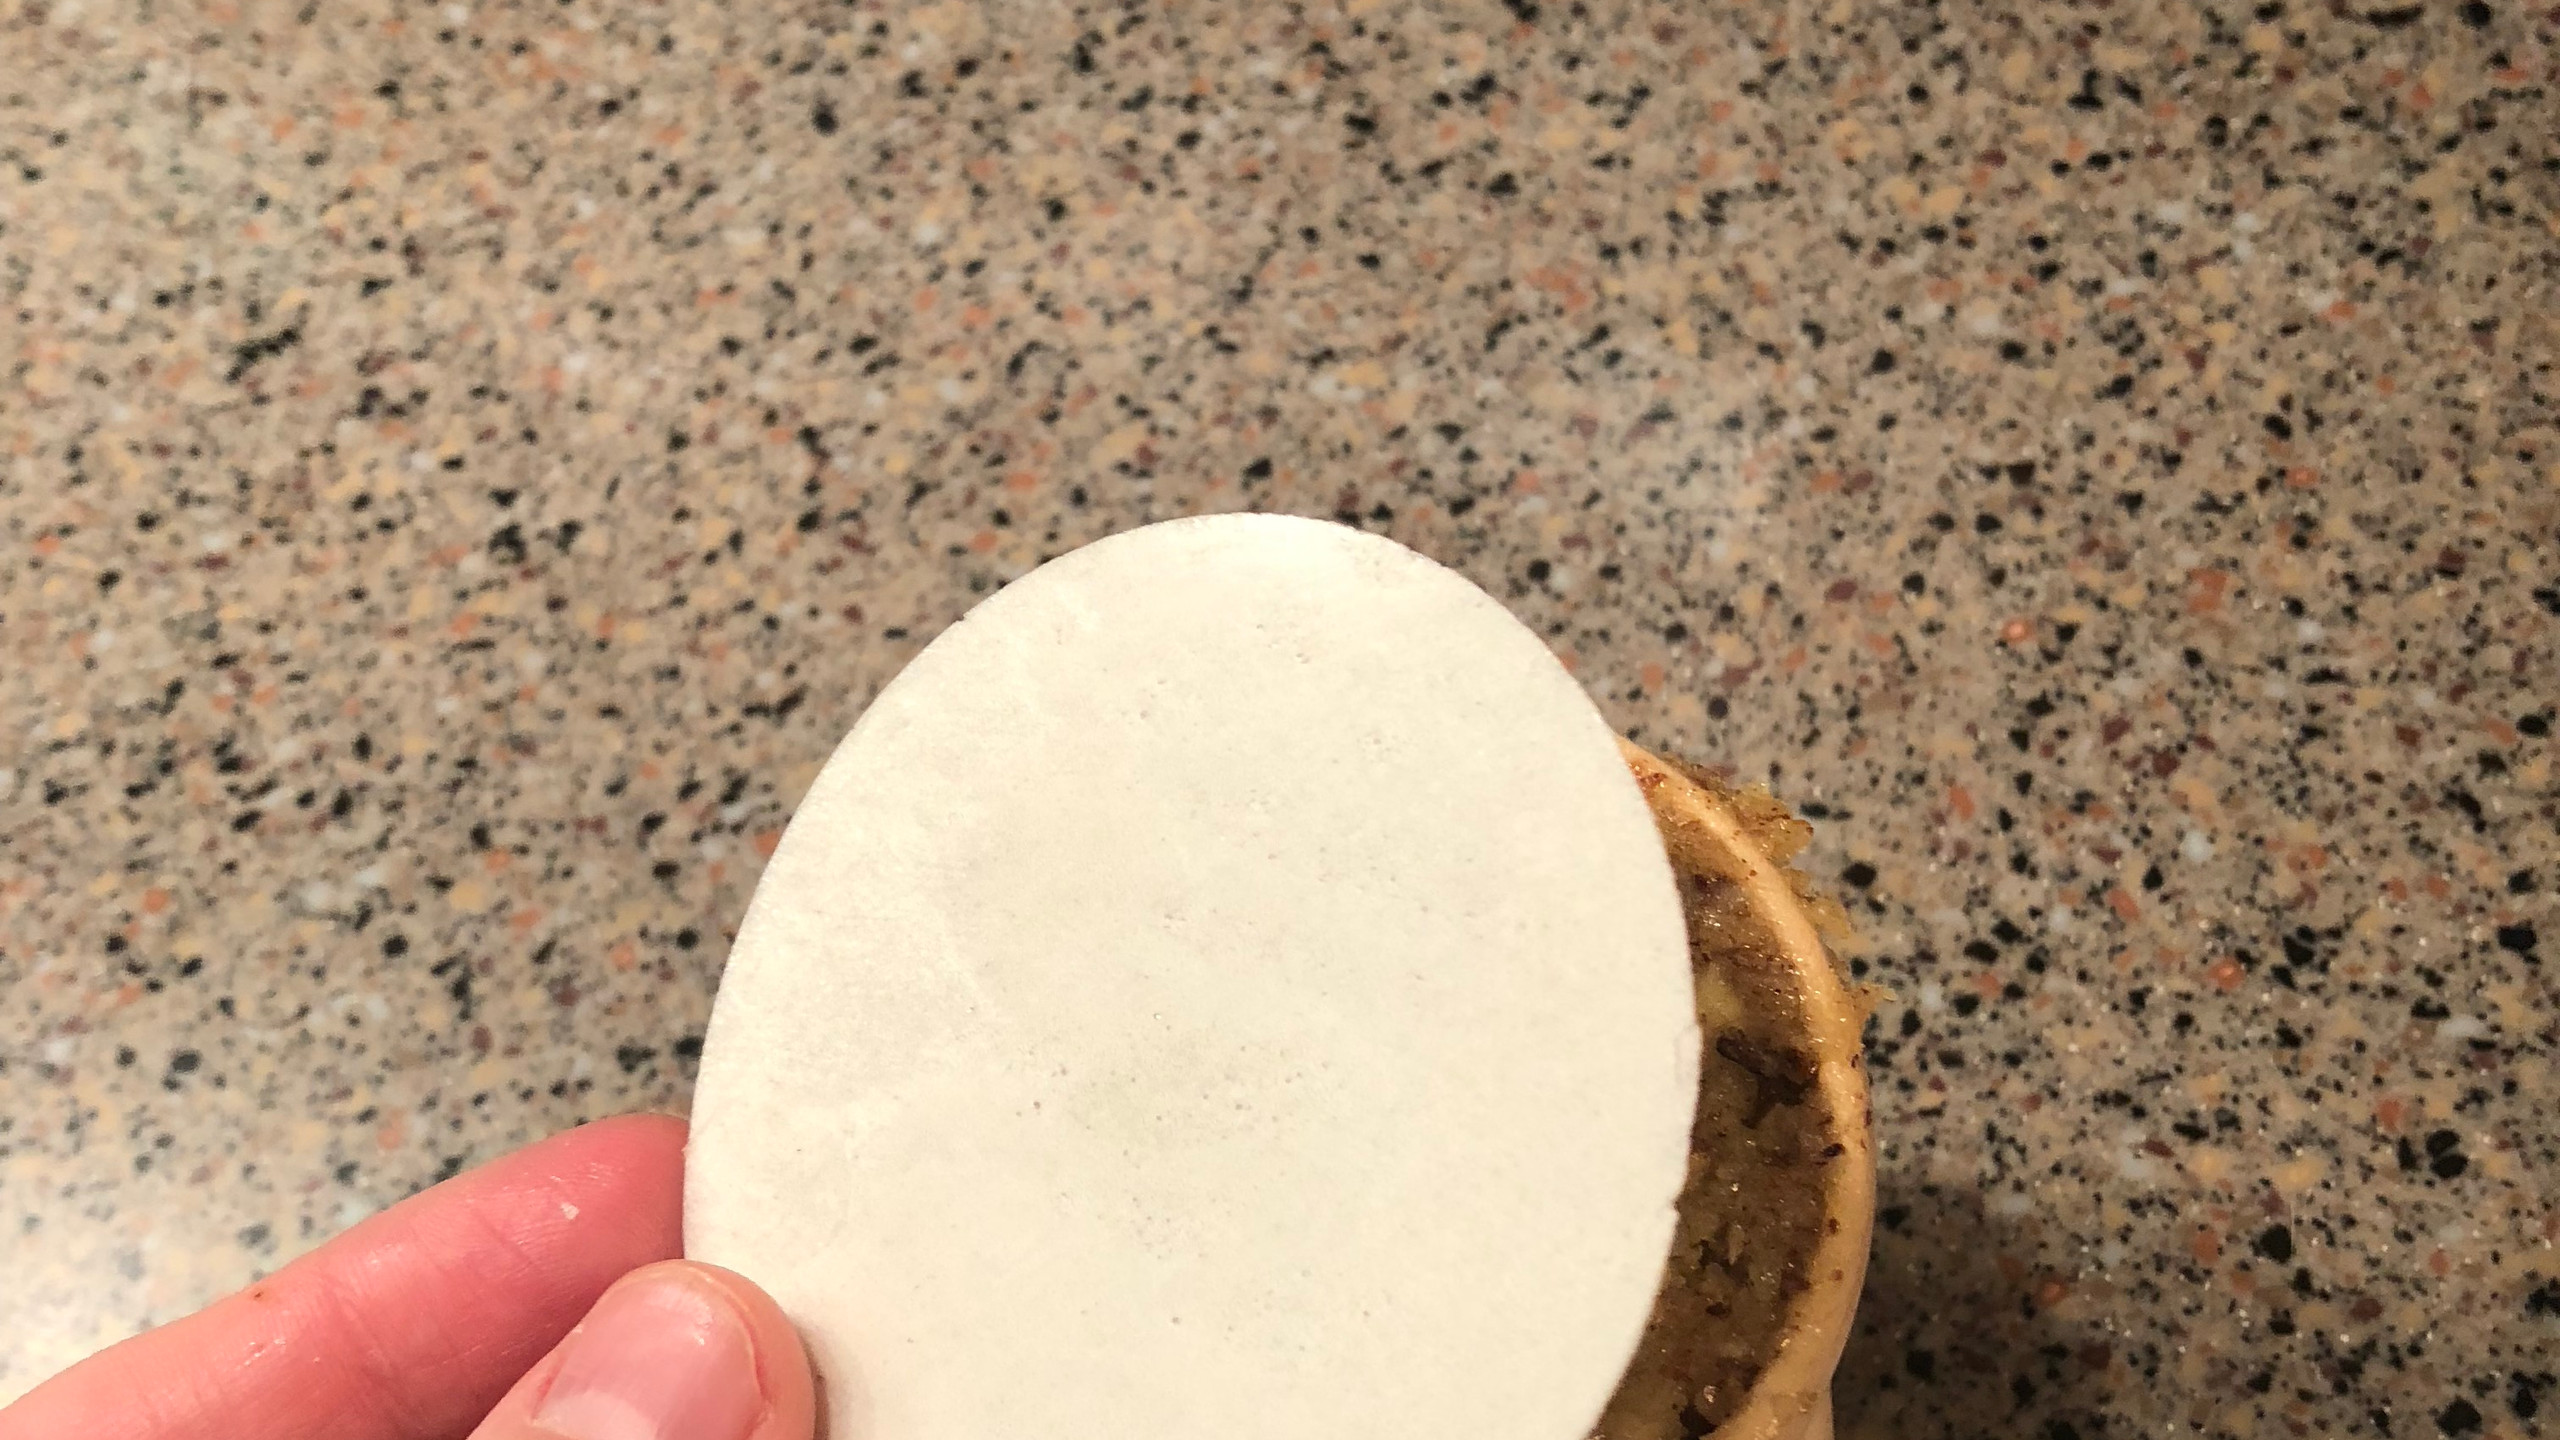 Add round wafer to back of cookie